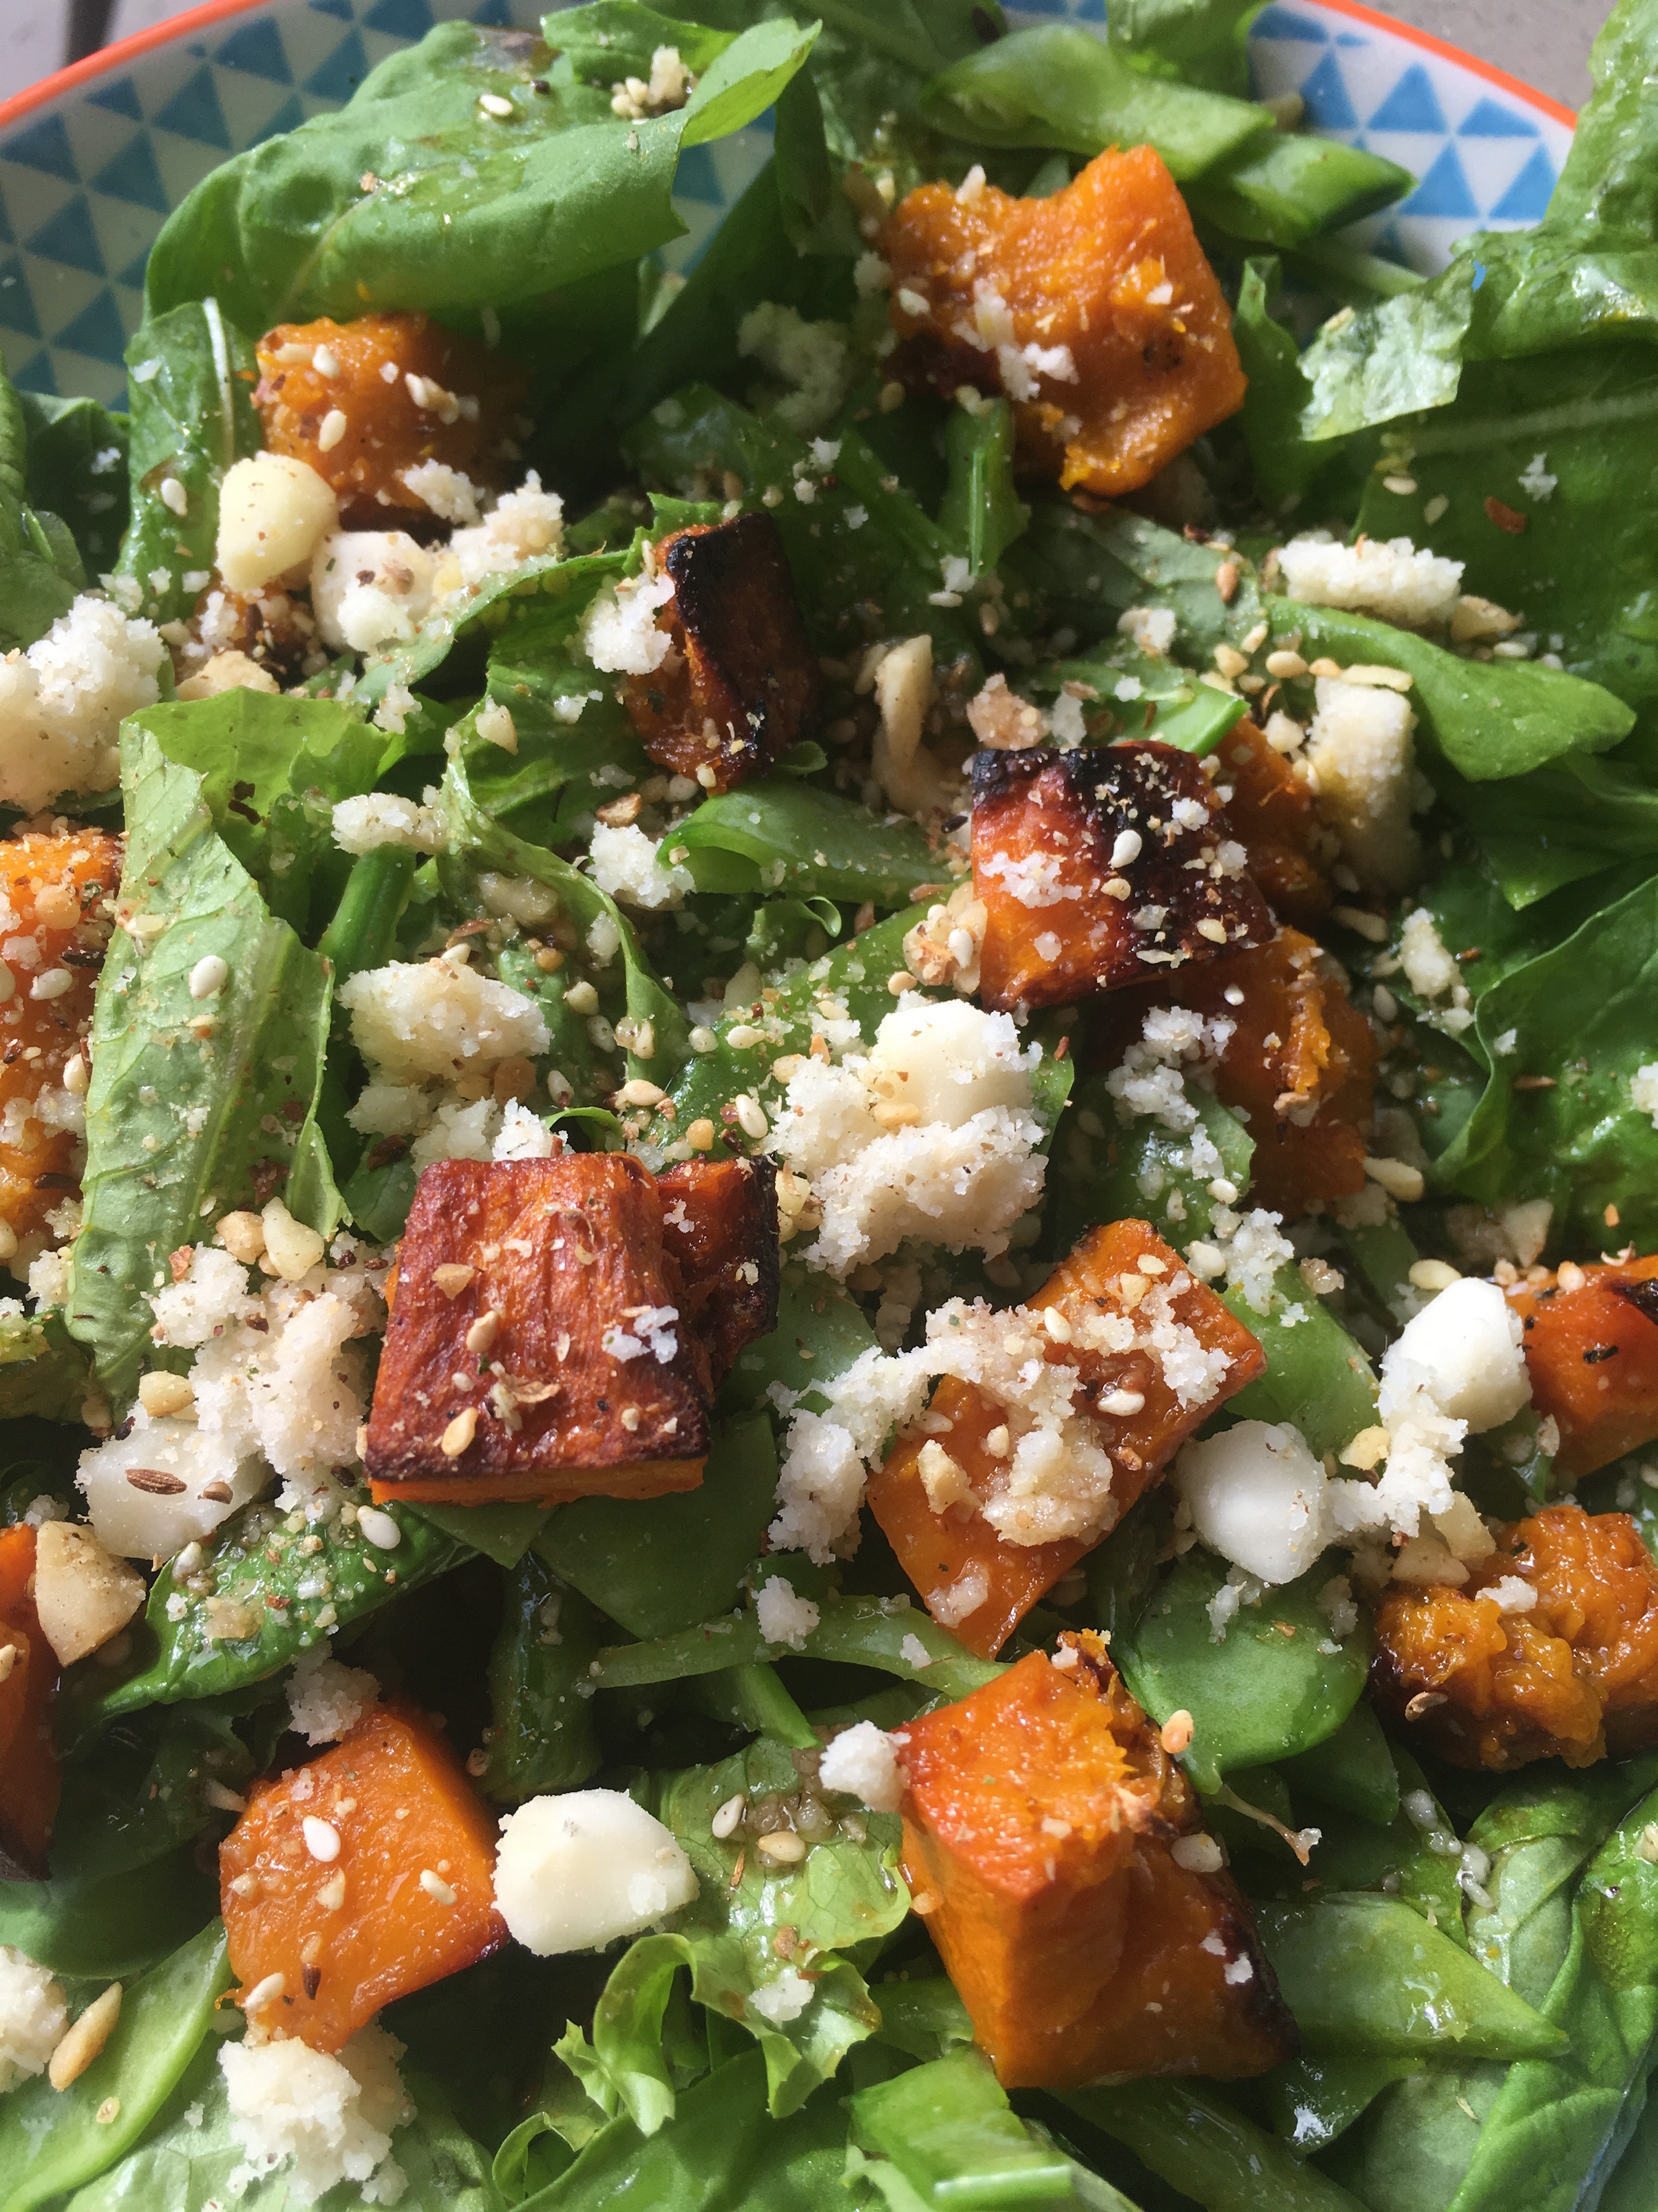 Roasted Pumpkin and Feta Salad with Honey and Balsamic Dressing.